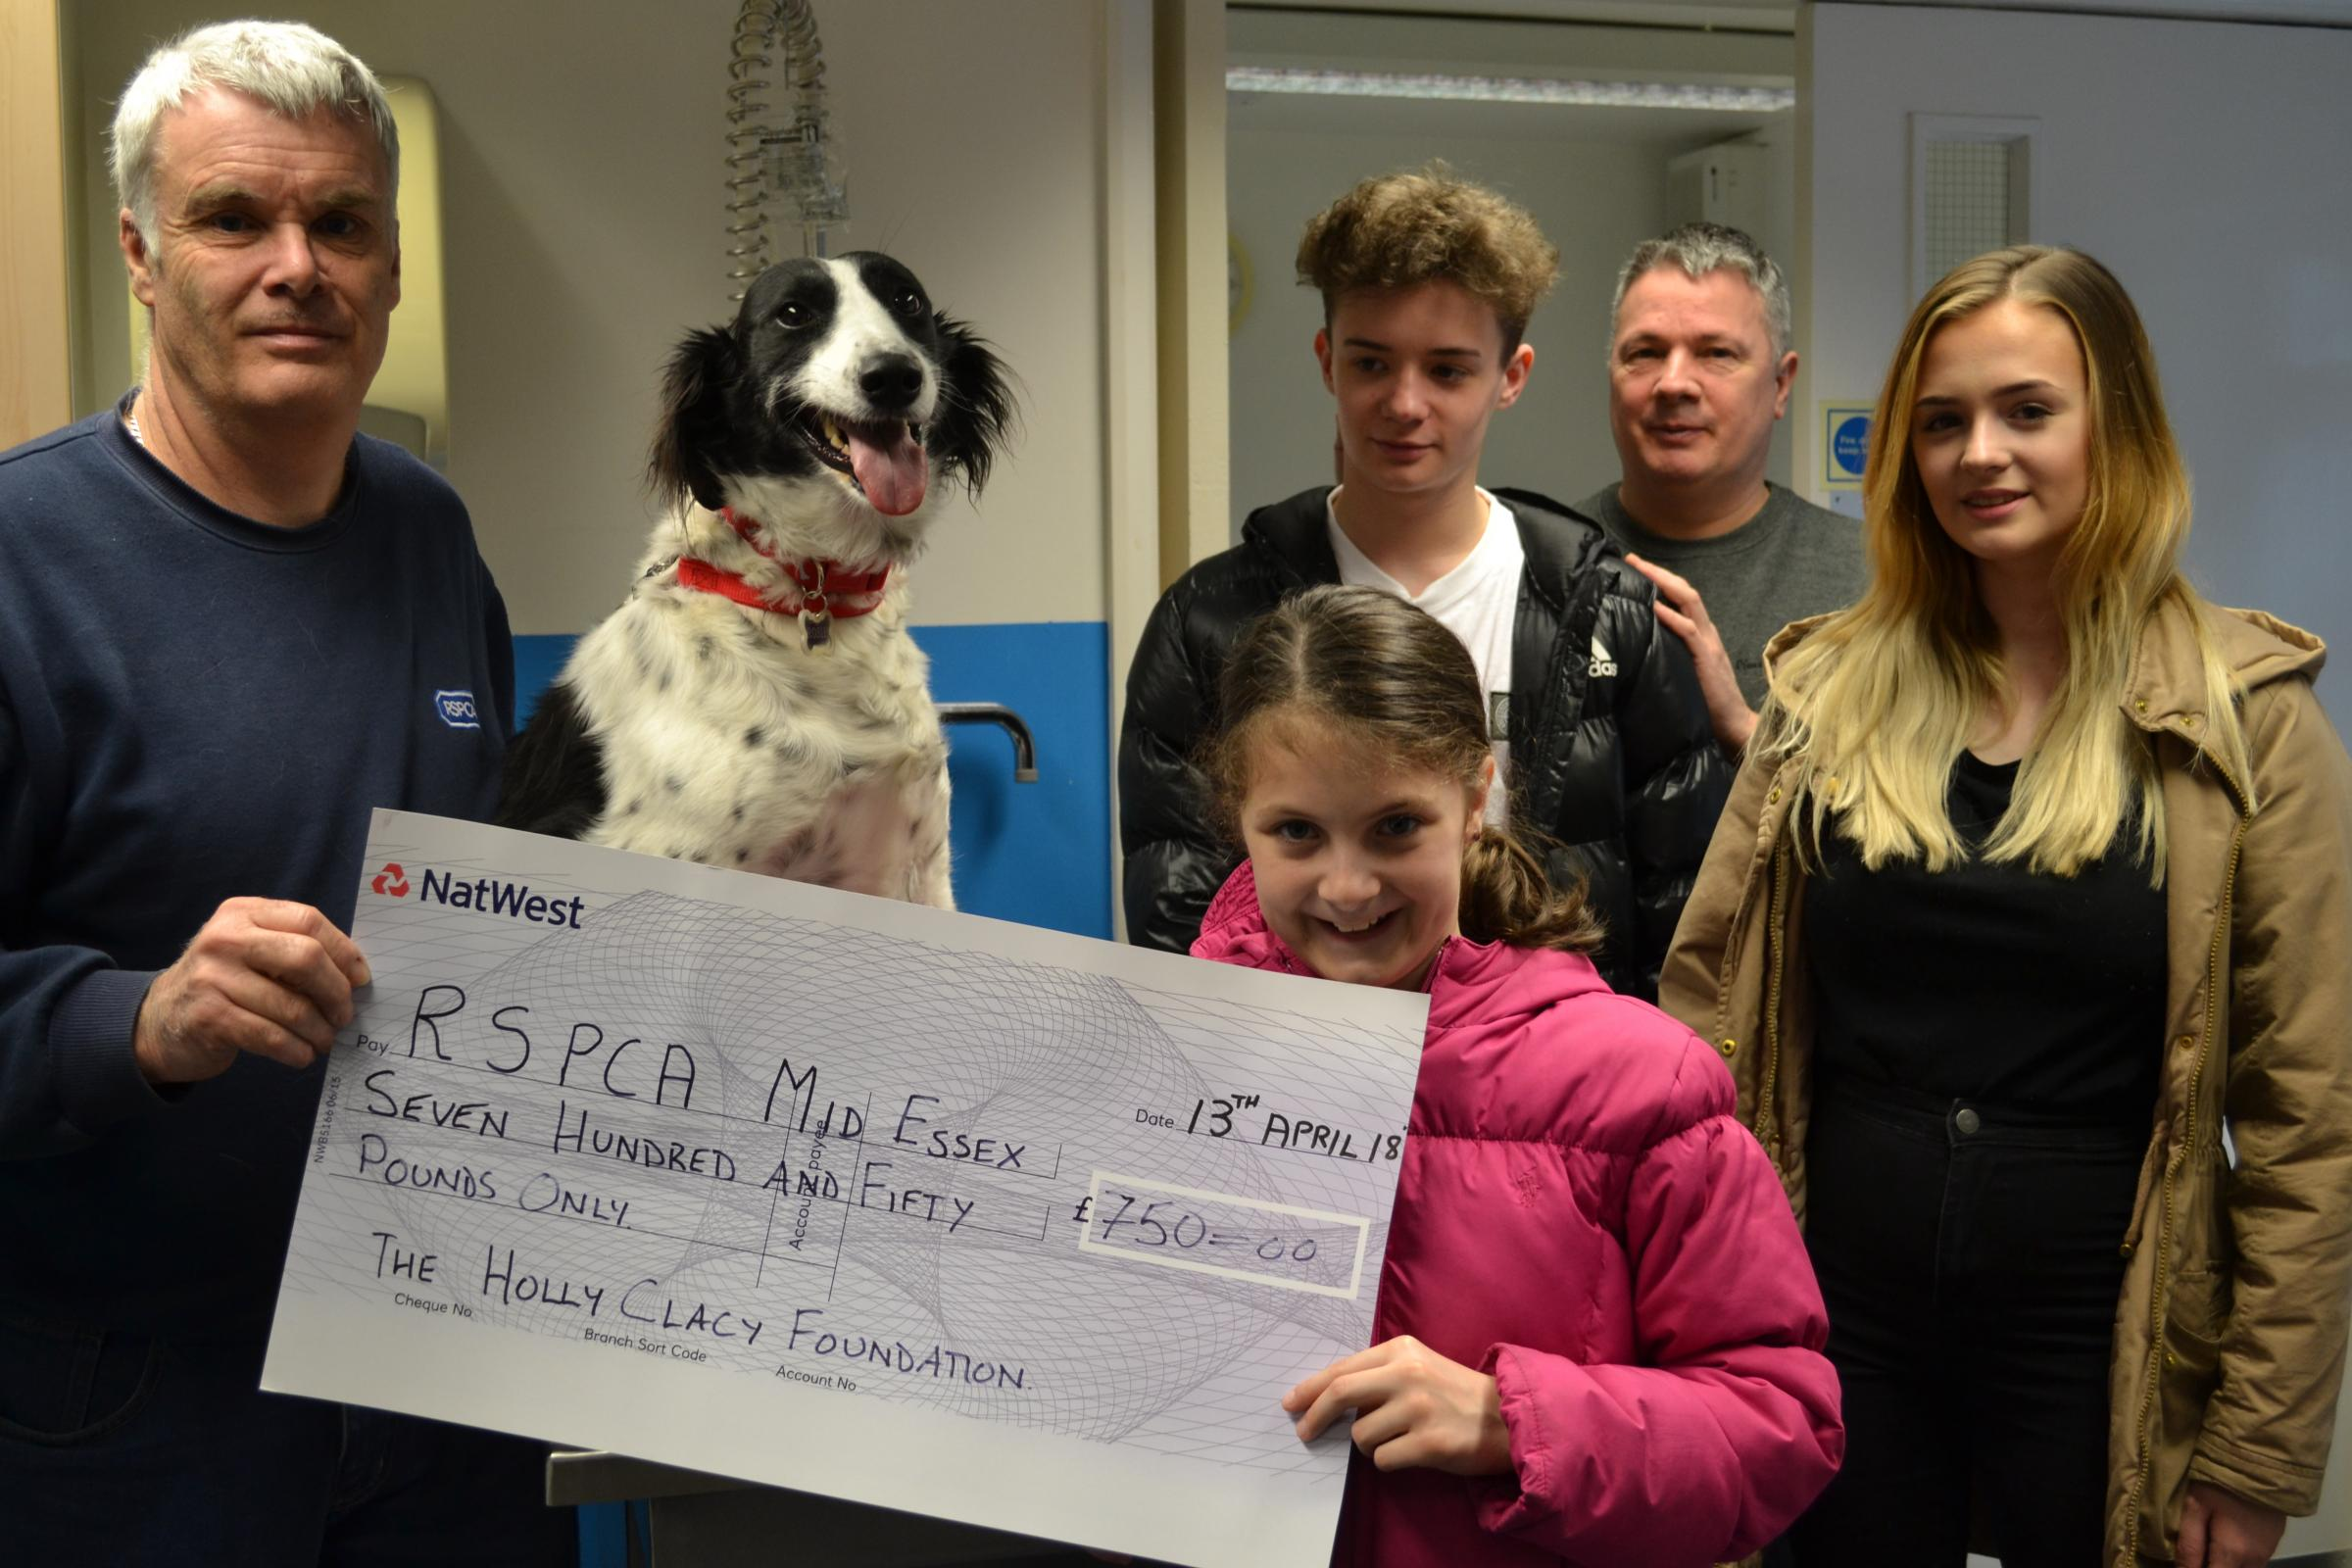 DONATION: David, Etholle, Elliott, and Lilia Clacy presenting a cheque for £750 to Mid Essex RSPCA Chairman Clive Vallis